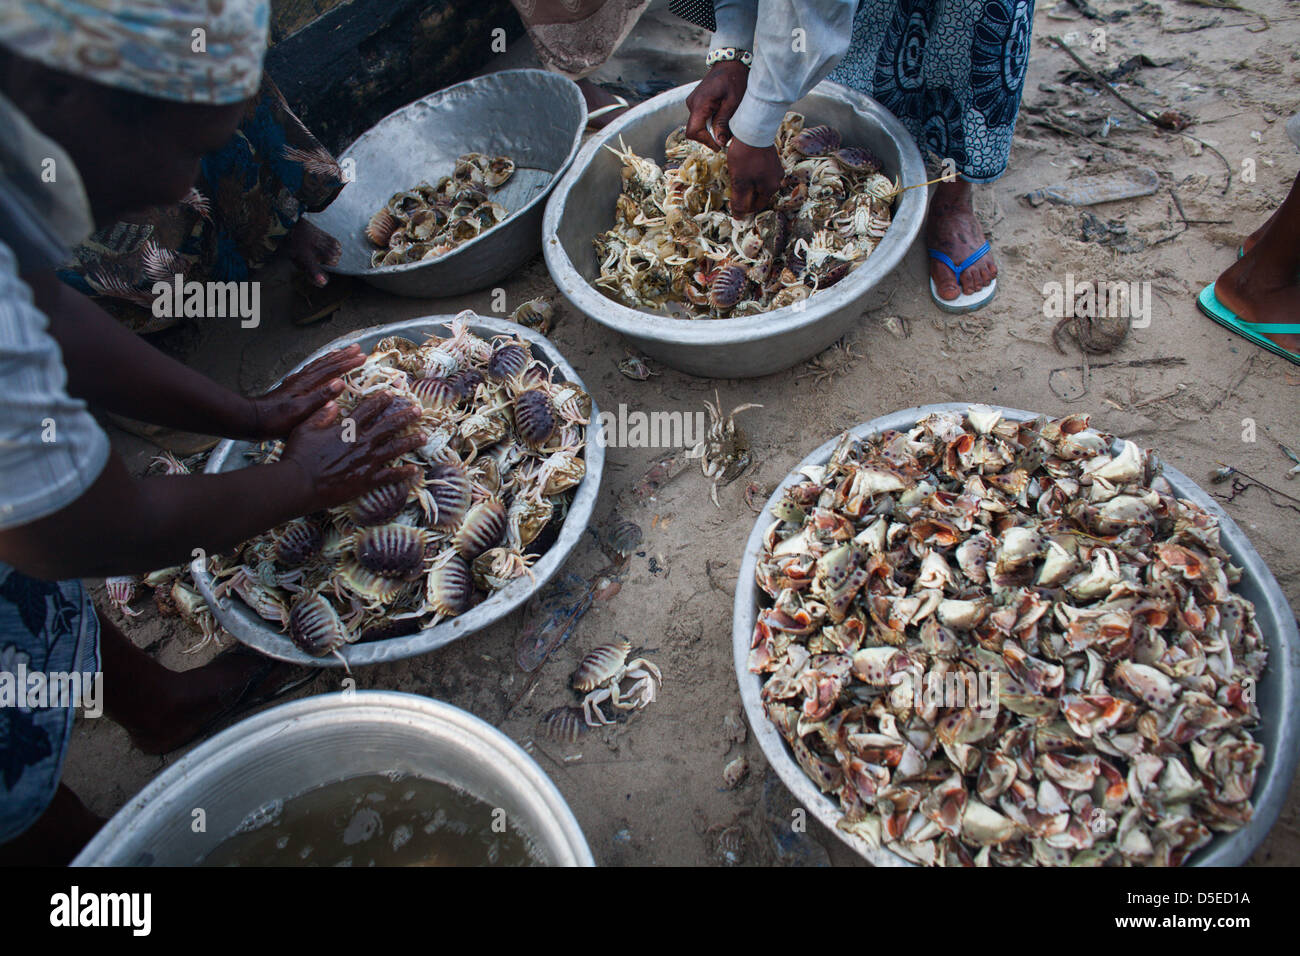 Women clean crabs on the beach in Accra, Ghana. - Stock Image